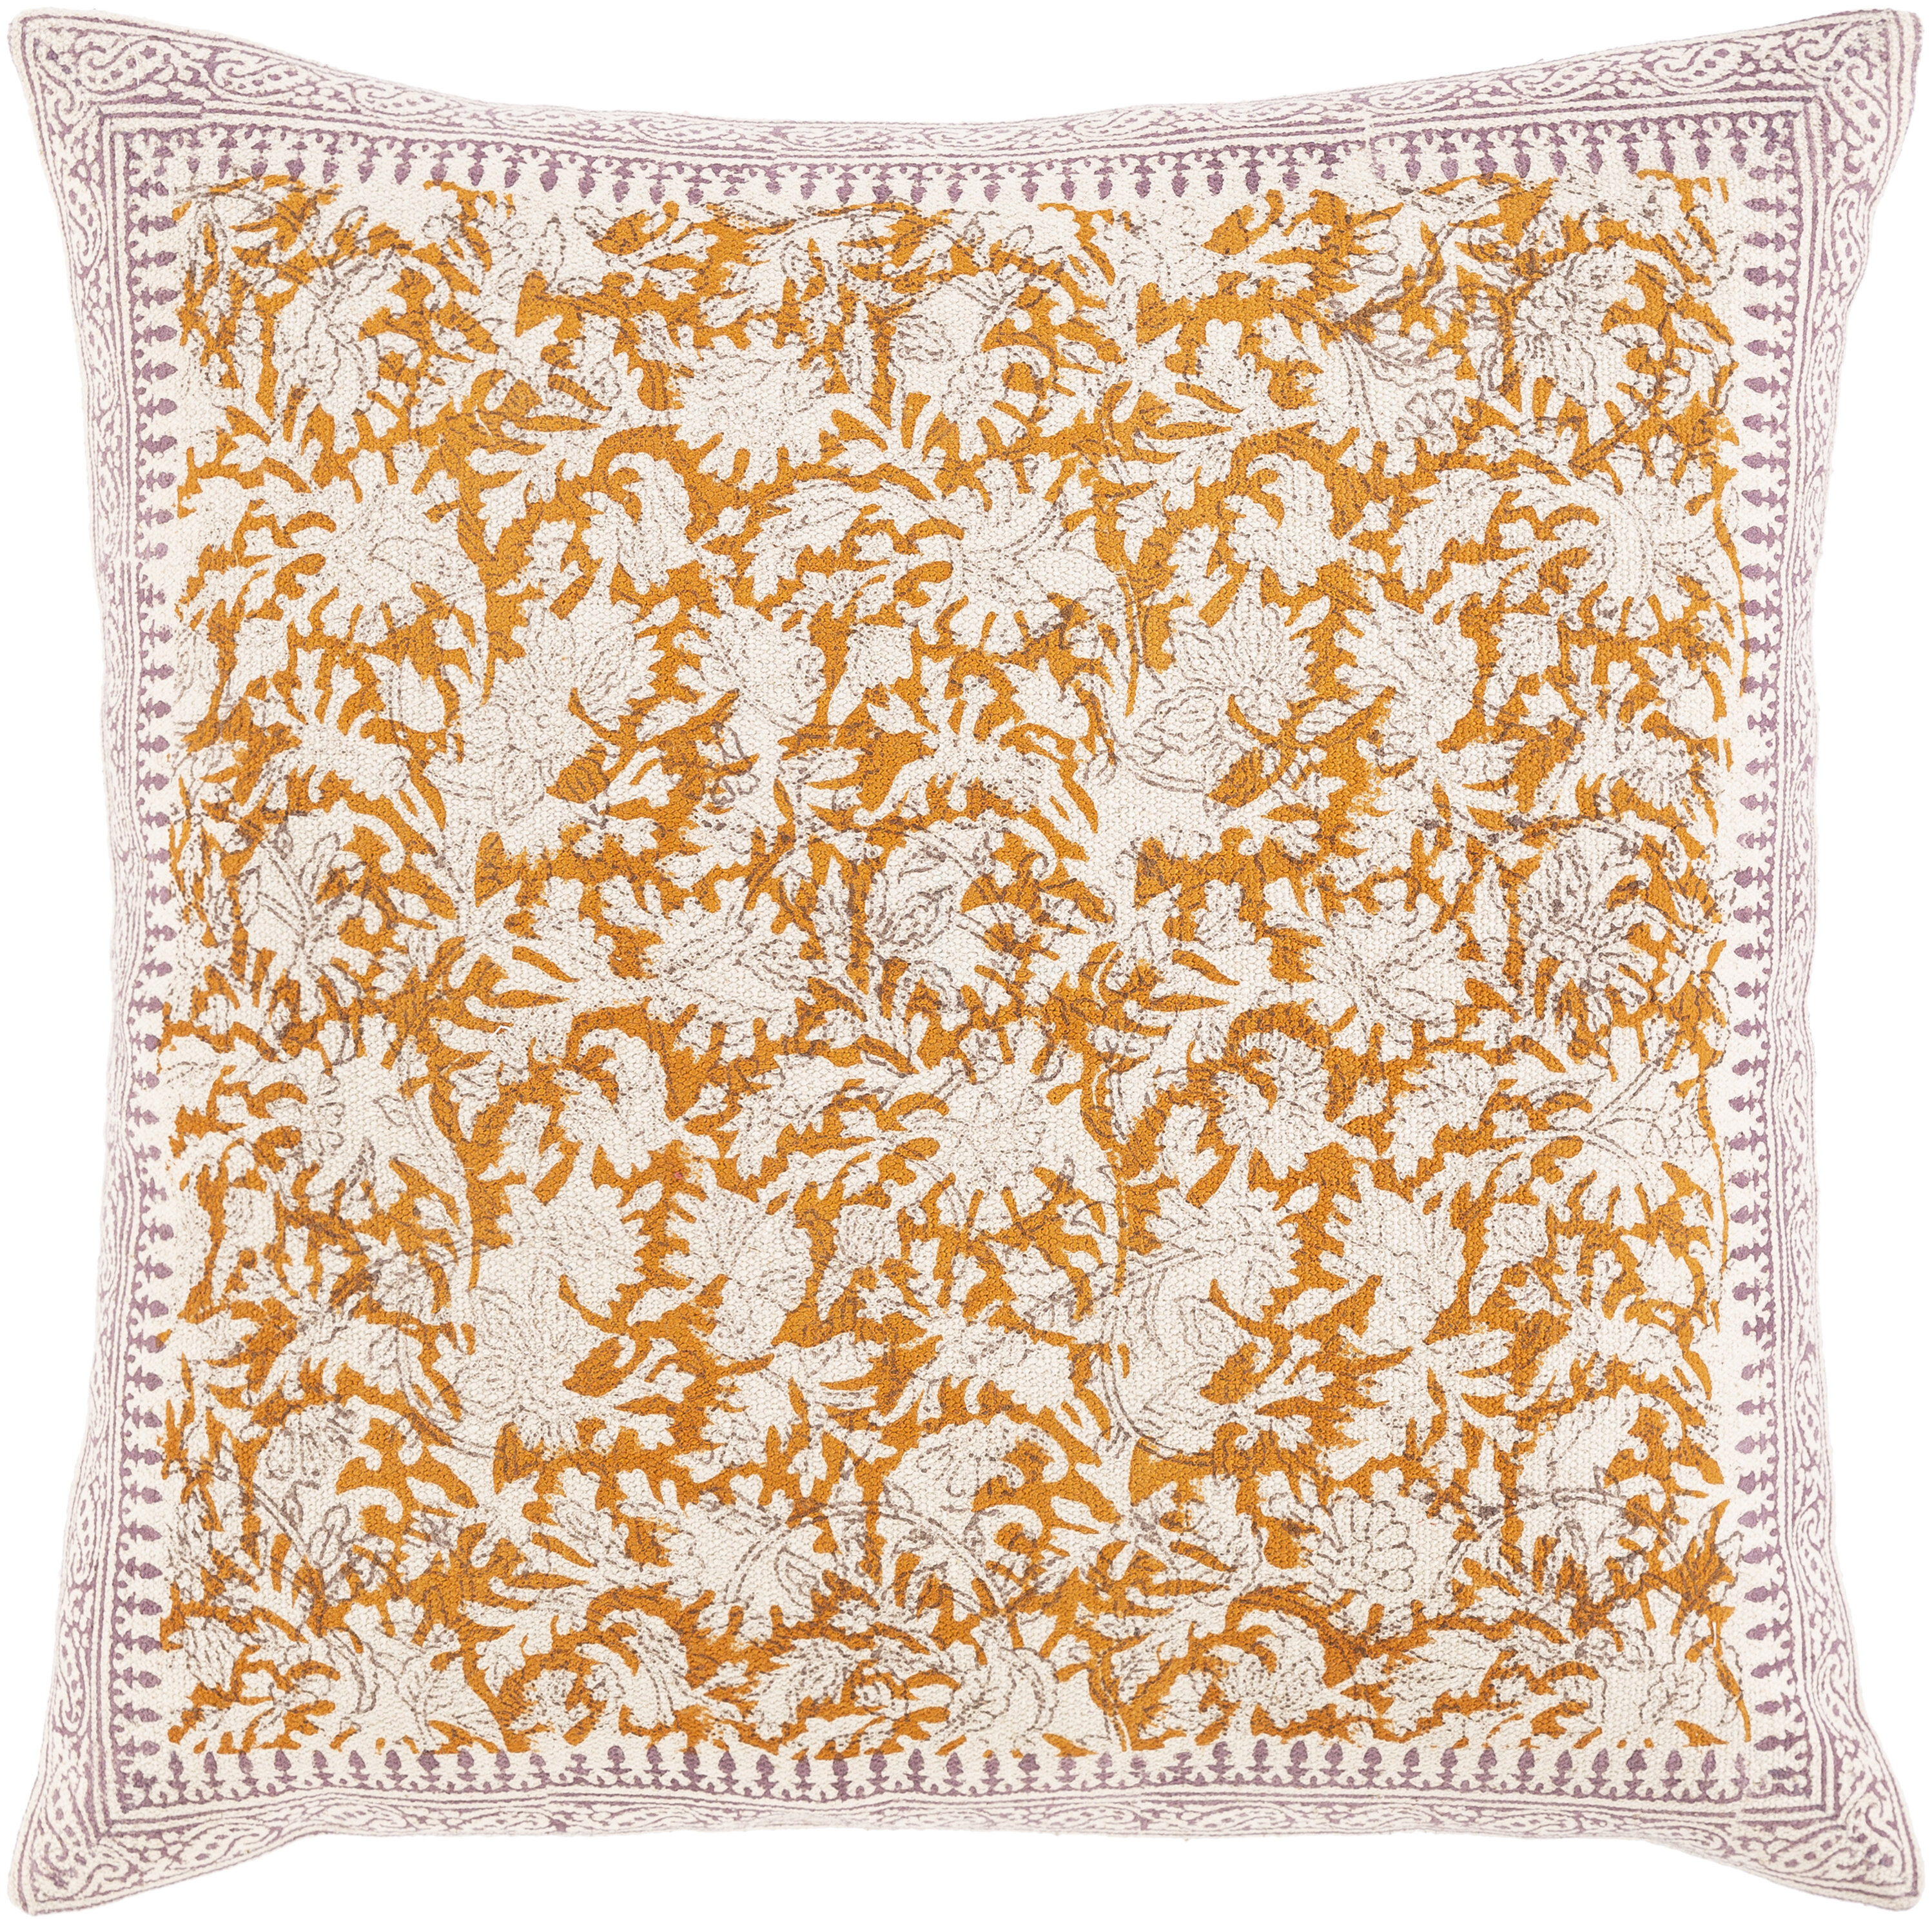 Pillow Cover Darby Home Co Throw Pillows You Ll Love In 2021 Wayfair